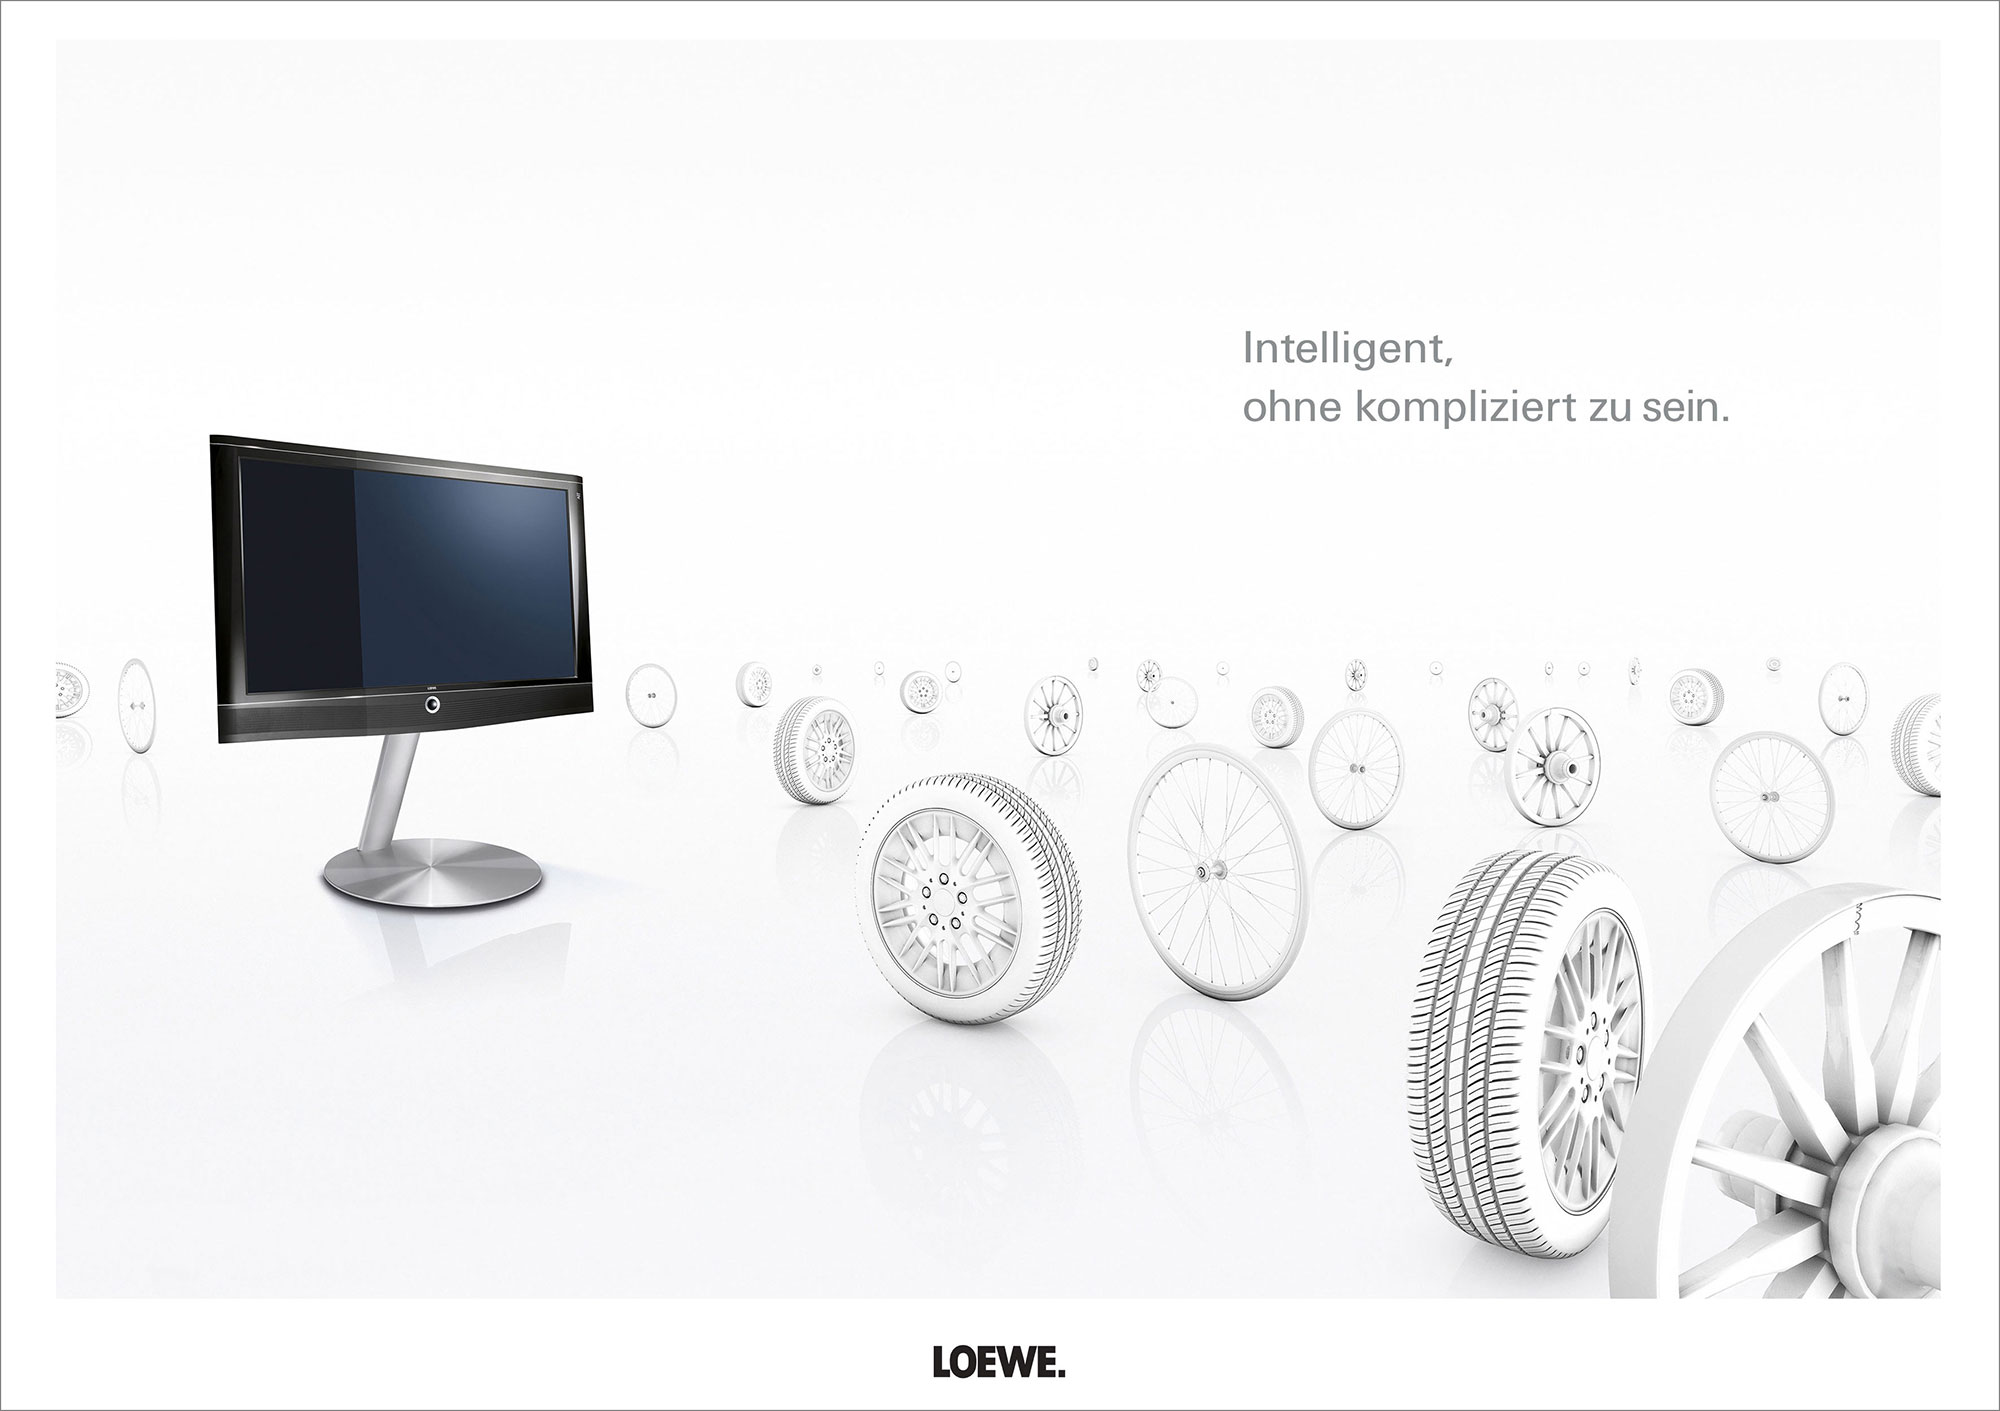 Advertising CGI Rendering 3d Loewe TV Highkey Weiss Räder individuell kompliziert Idris Kolodziej